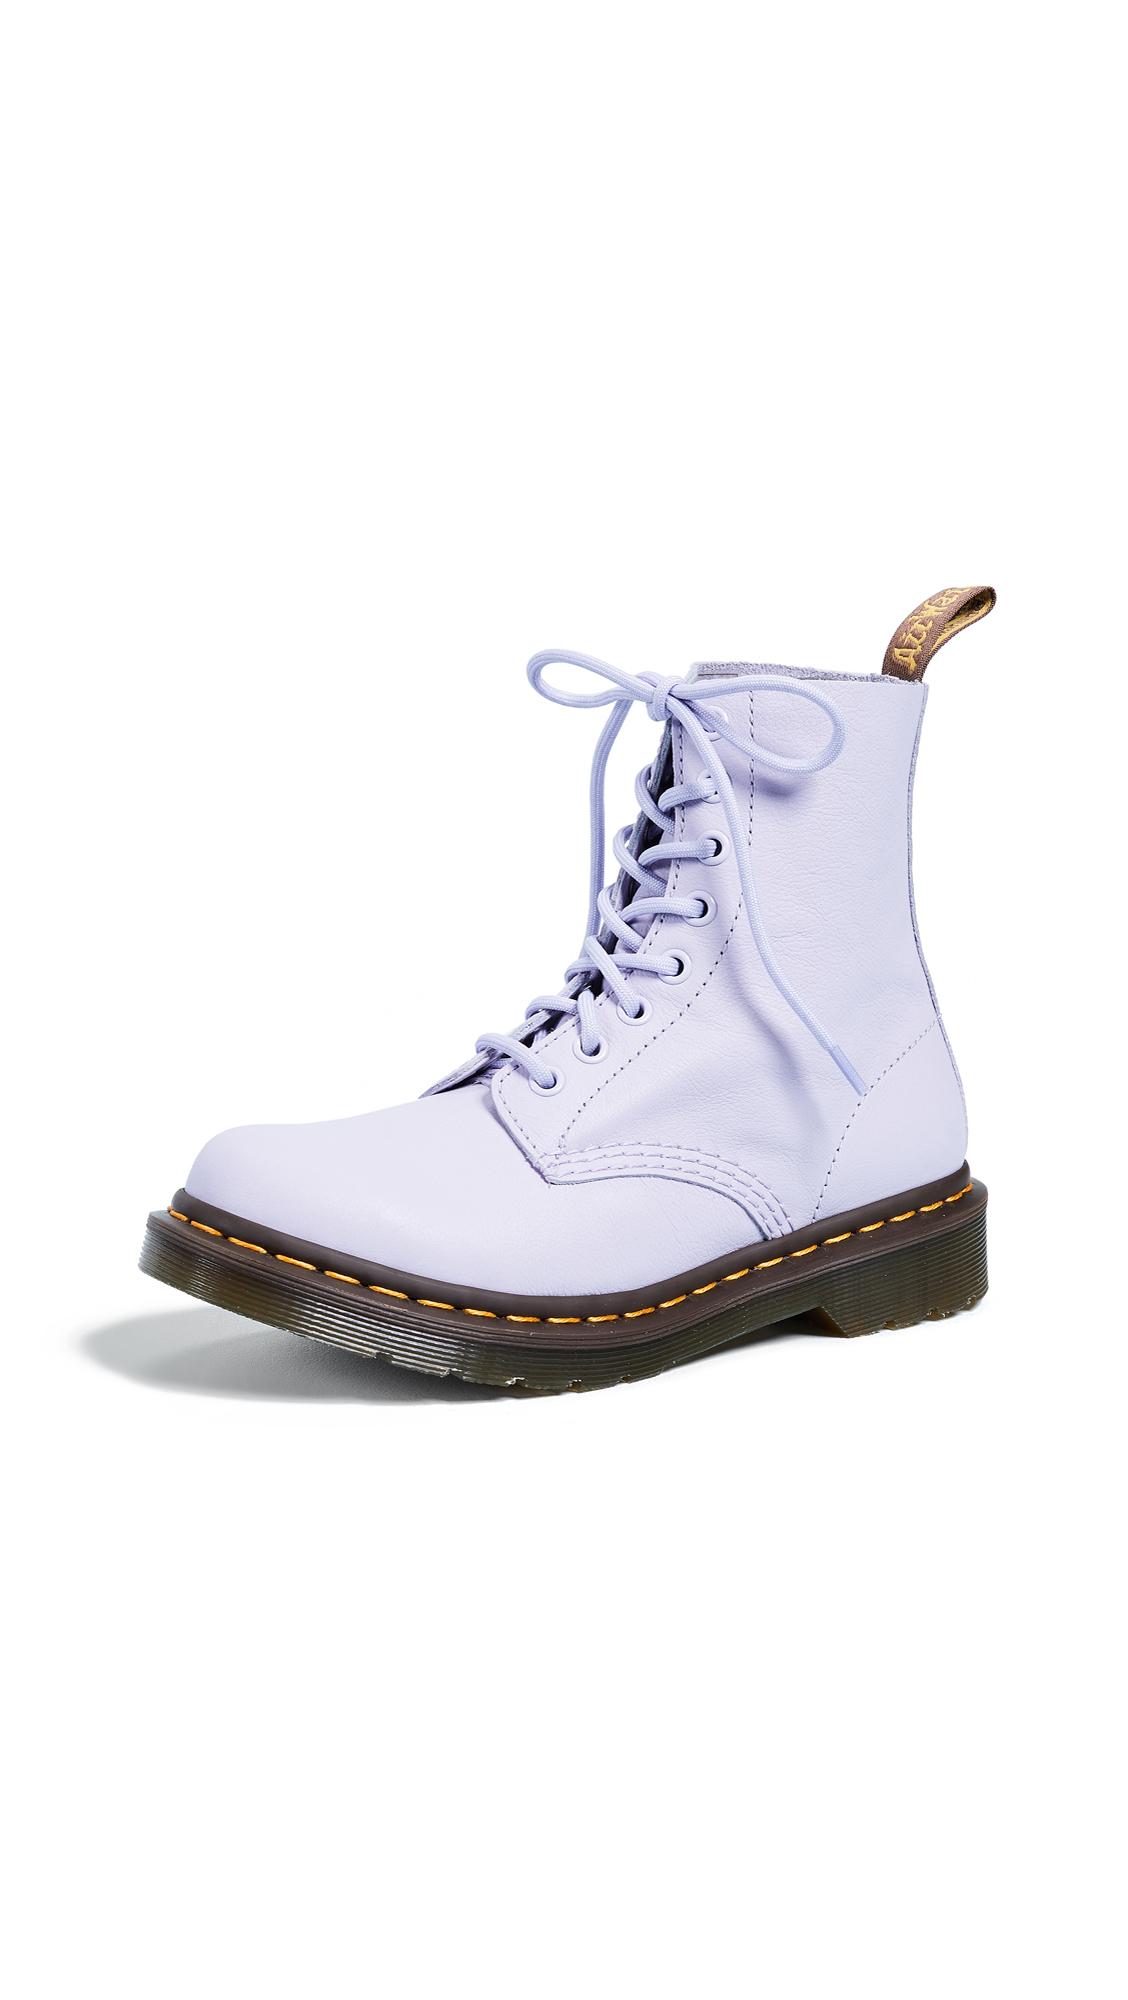 1460 PASCAL BOOTS